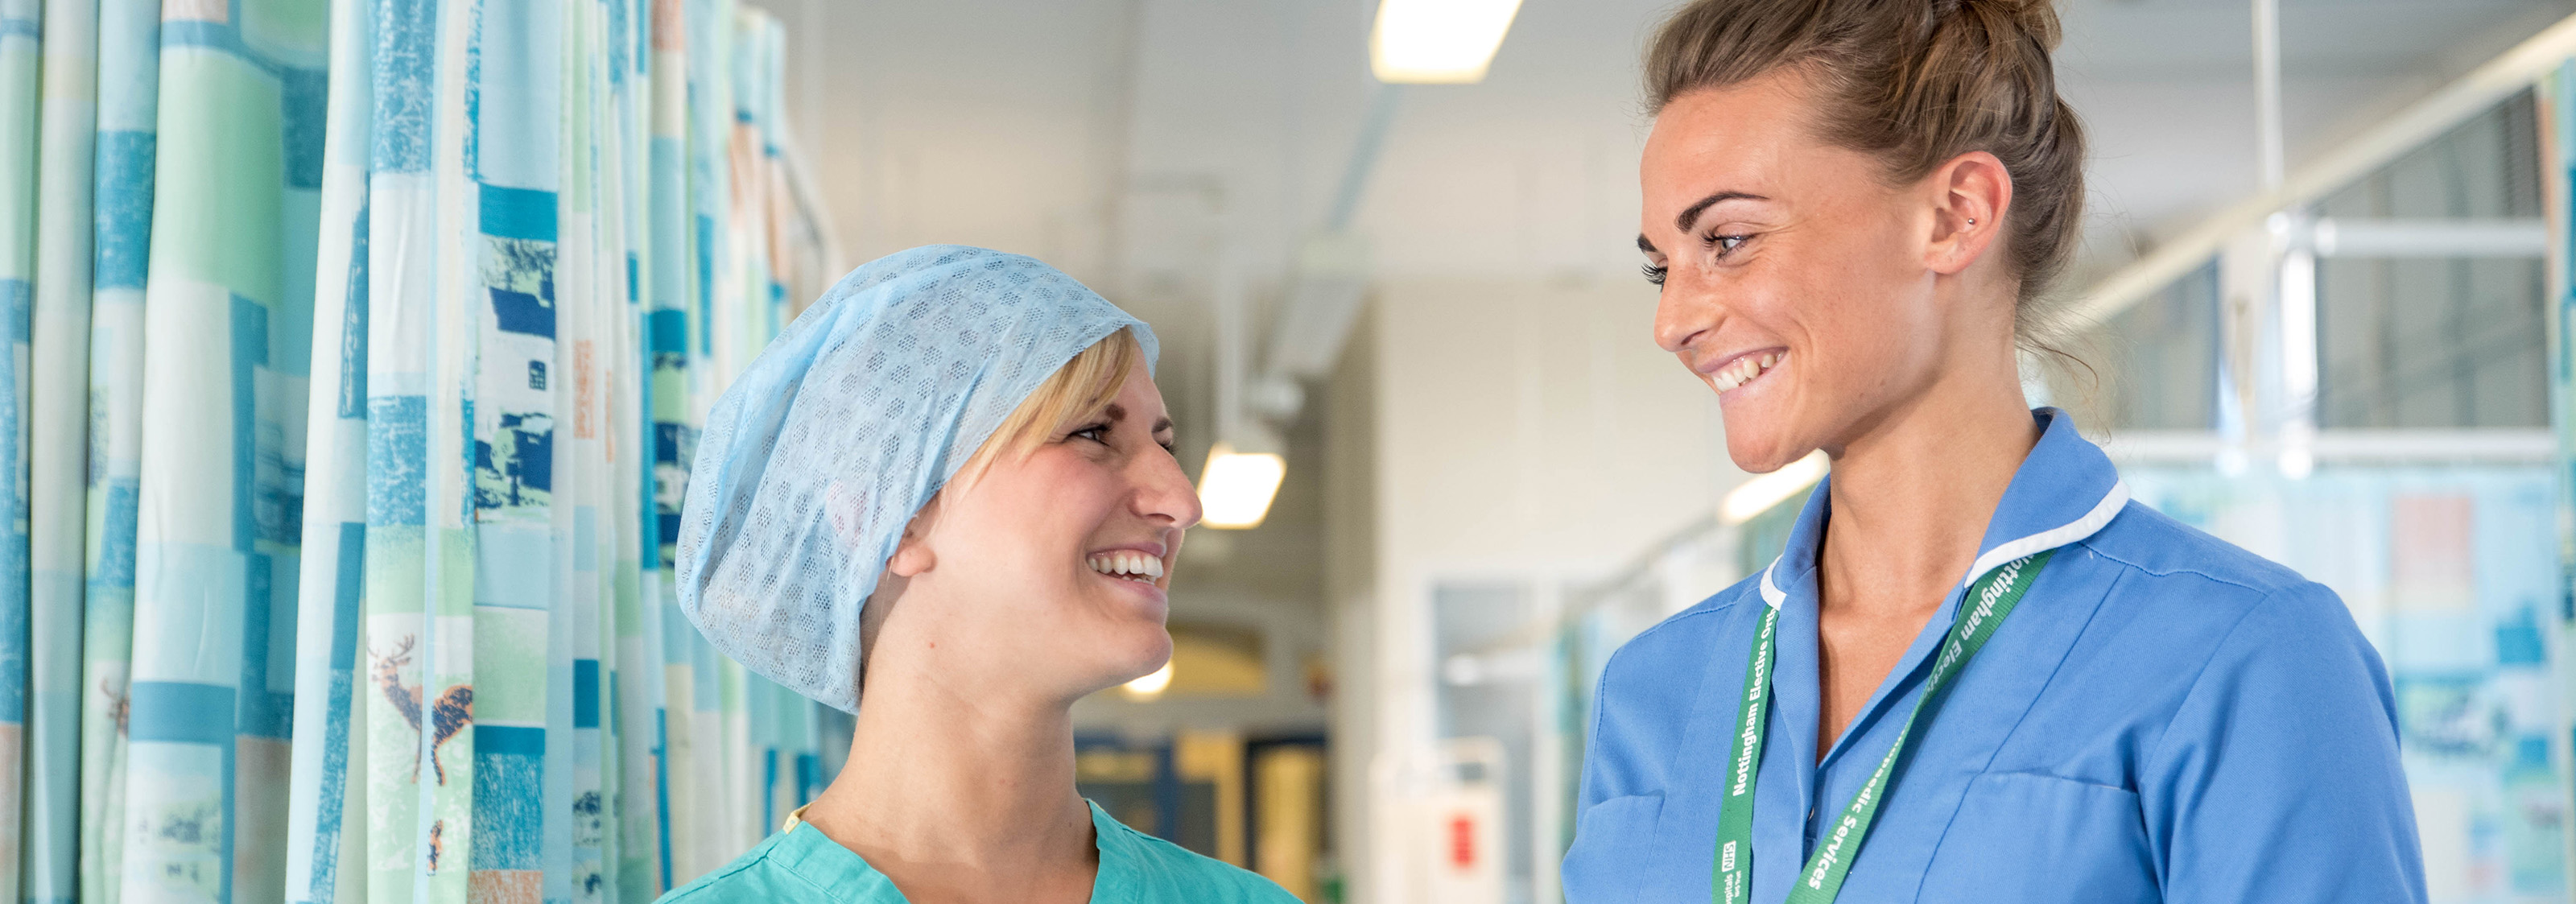 Two nurses talking